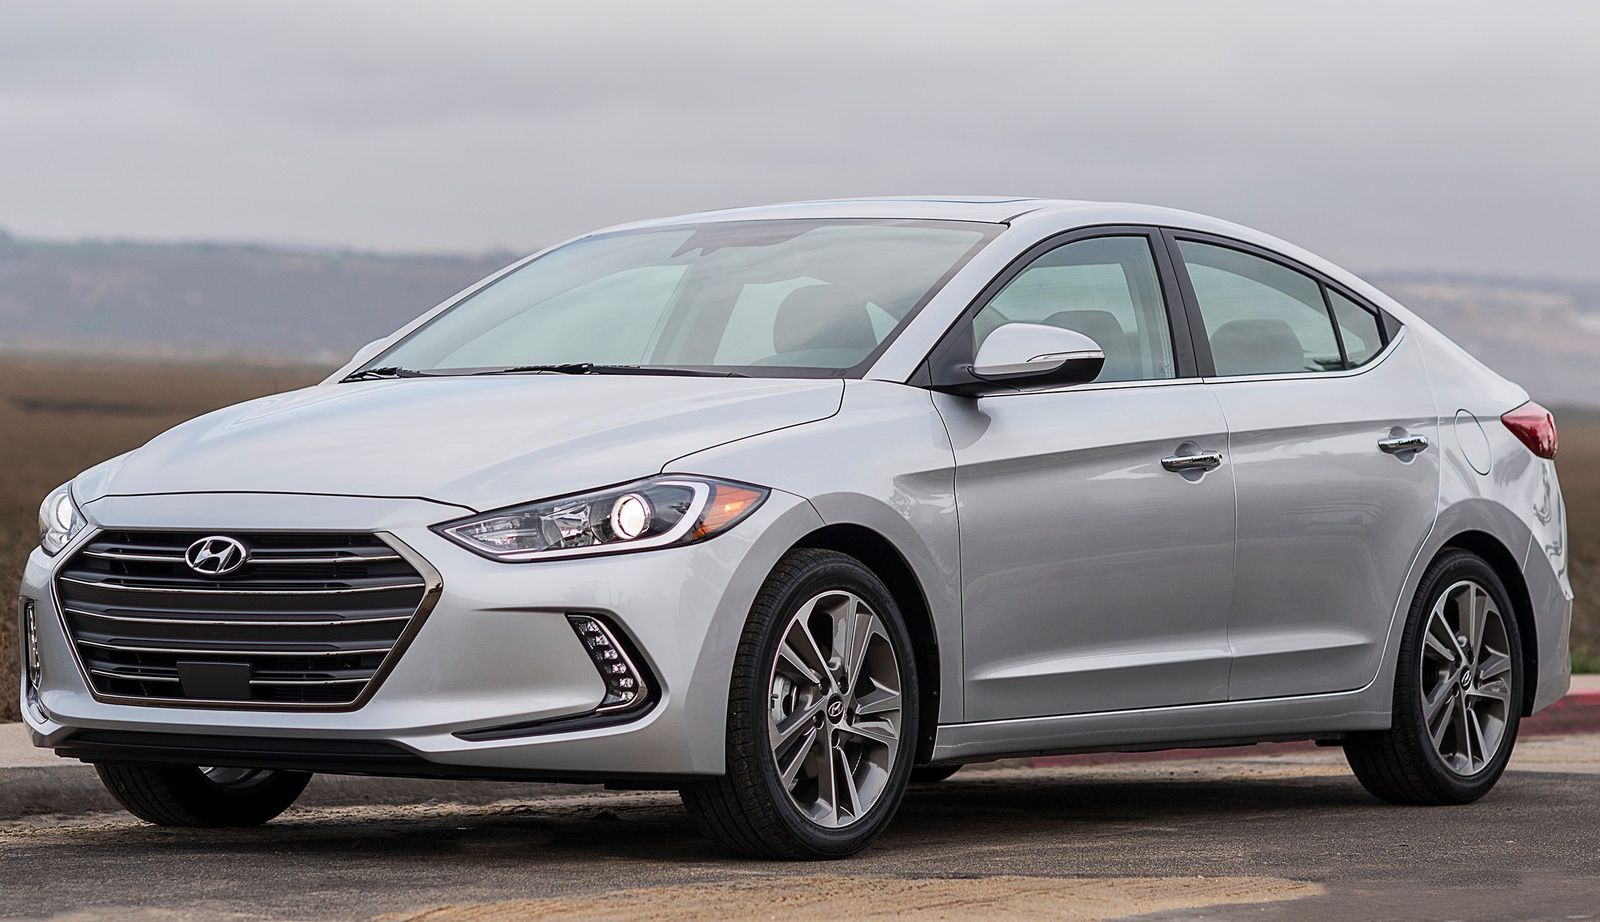 The Hyundai Elantra has a fresh new look, three new